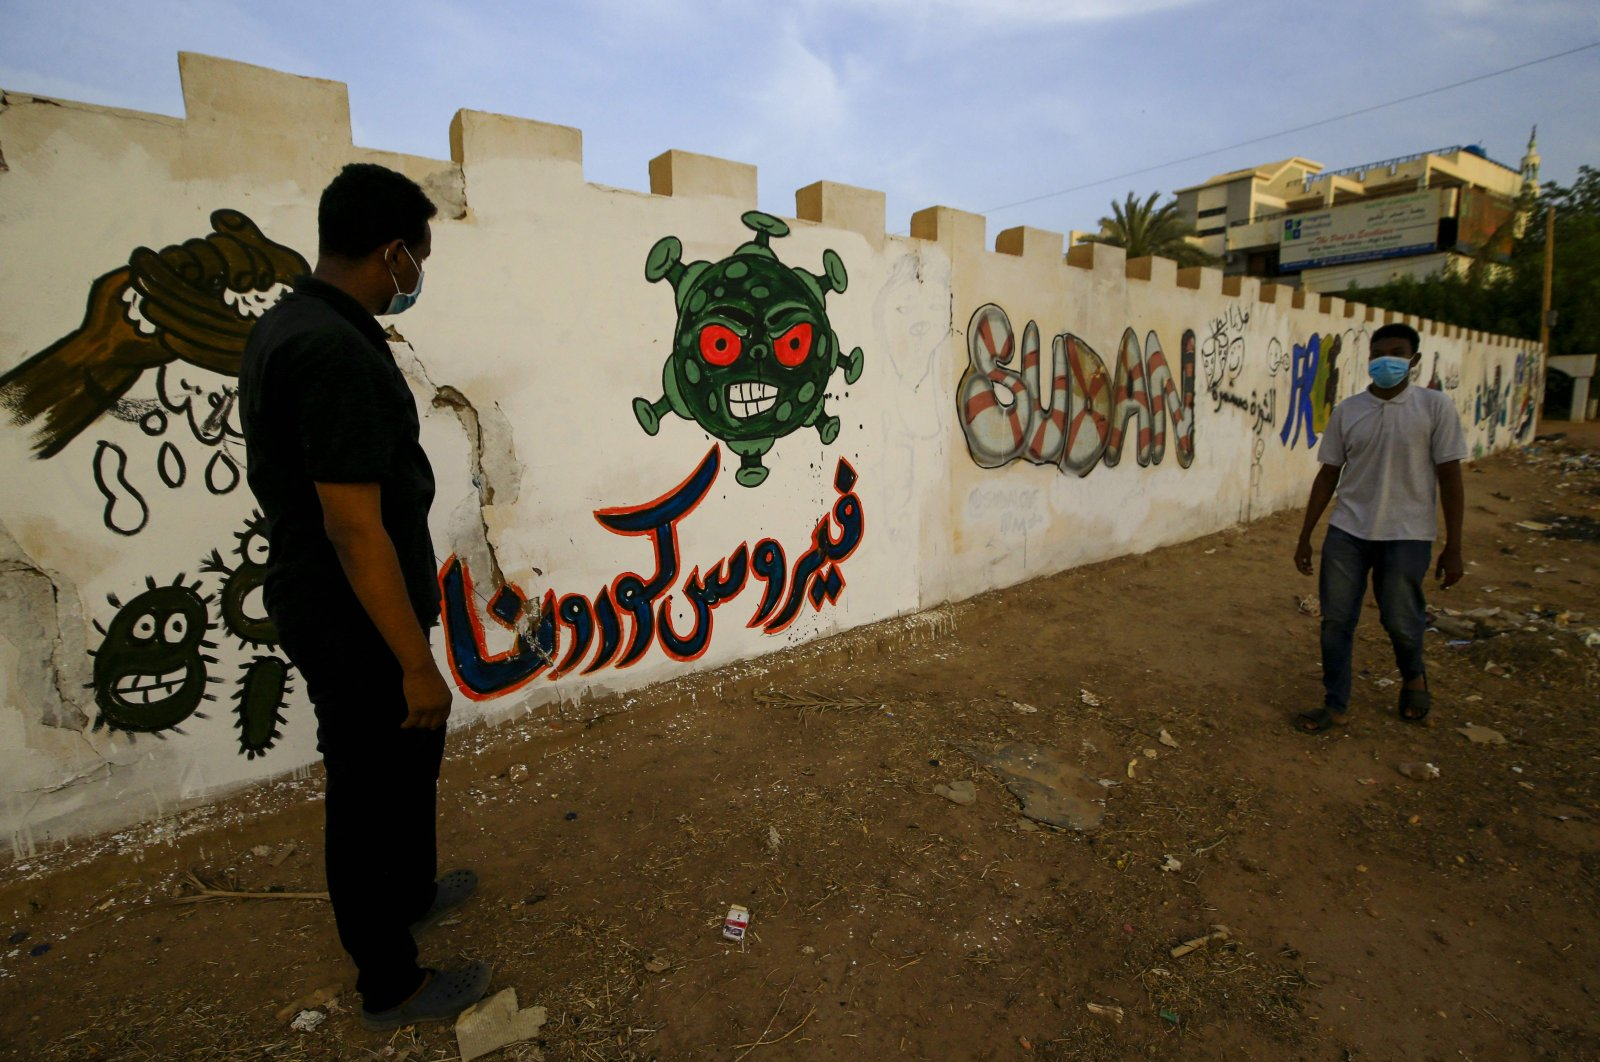 Sudanese volunteers, wearing protective face masks, stand next to a graffiti of the COVID-19, Khartoum, April 8, 2020. (AFP Photo)